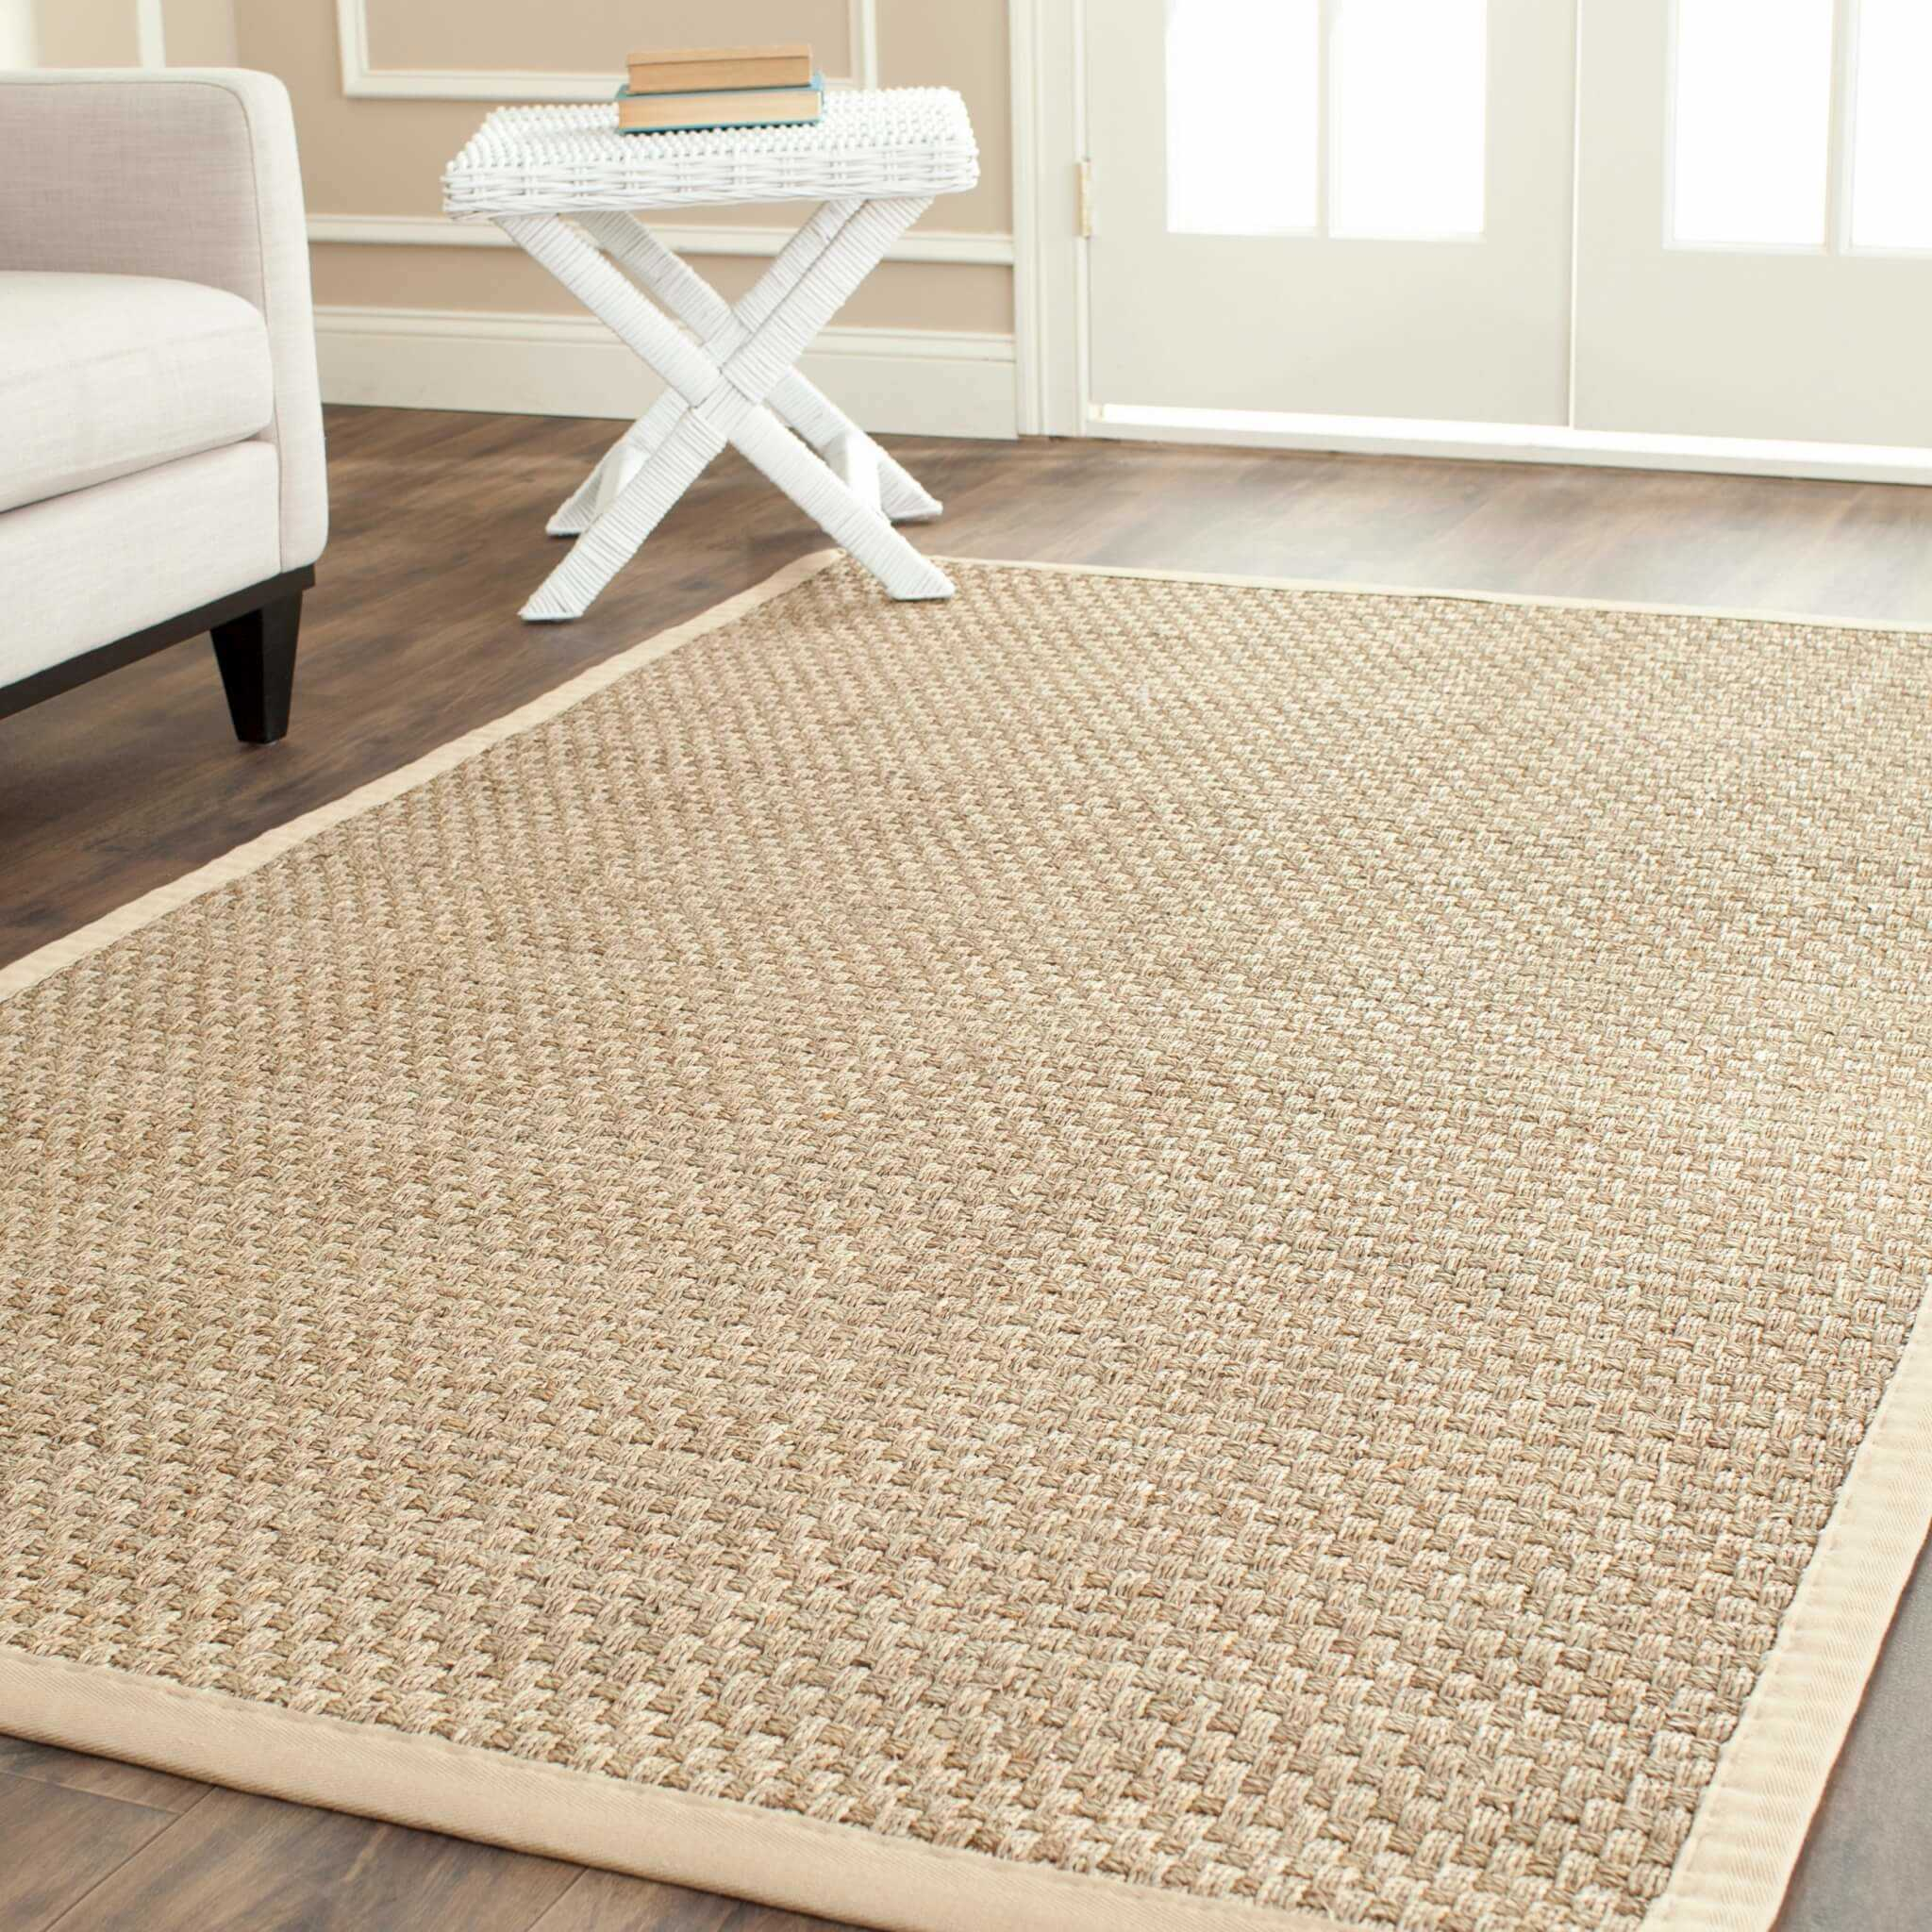 slip runners hallway foot rug long kitchen kukoon concorde buy anti rugs stair brown floor runner carpet trendy feet per